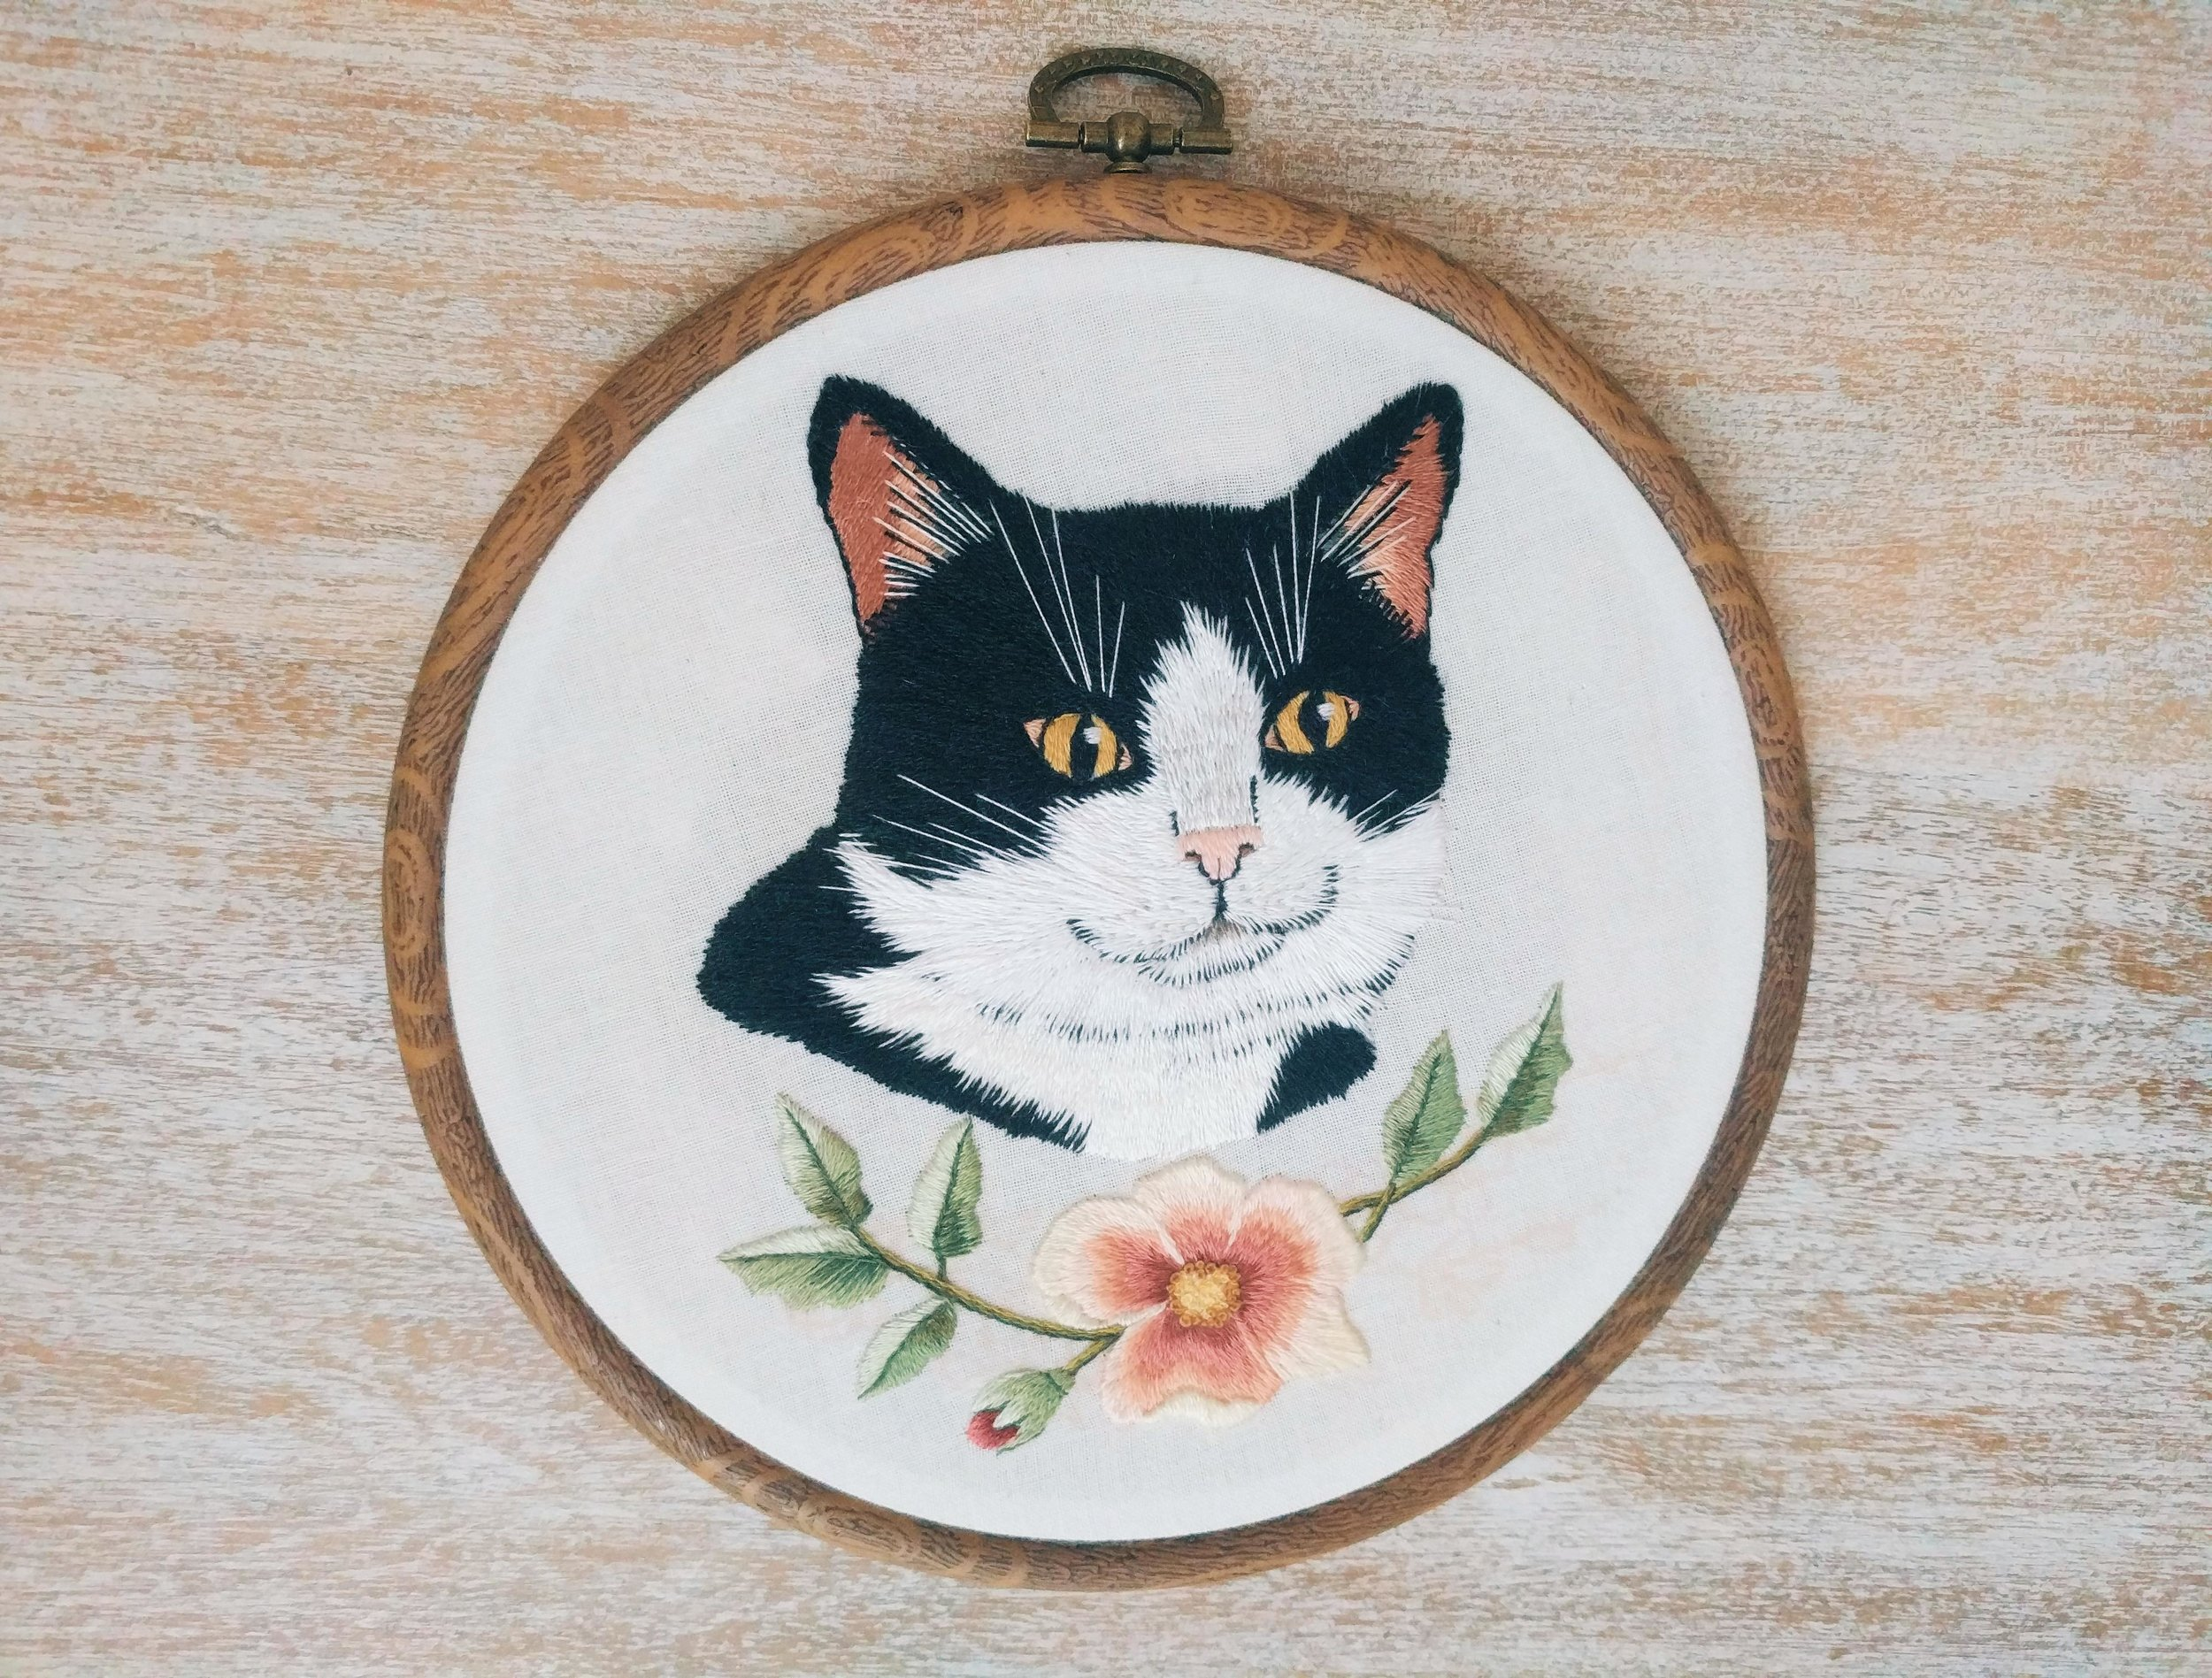 Mittens the cat- a gift for a friend